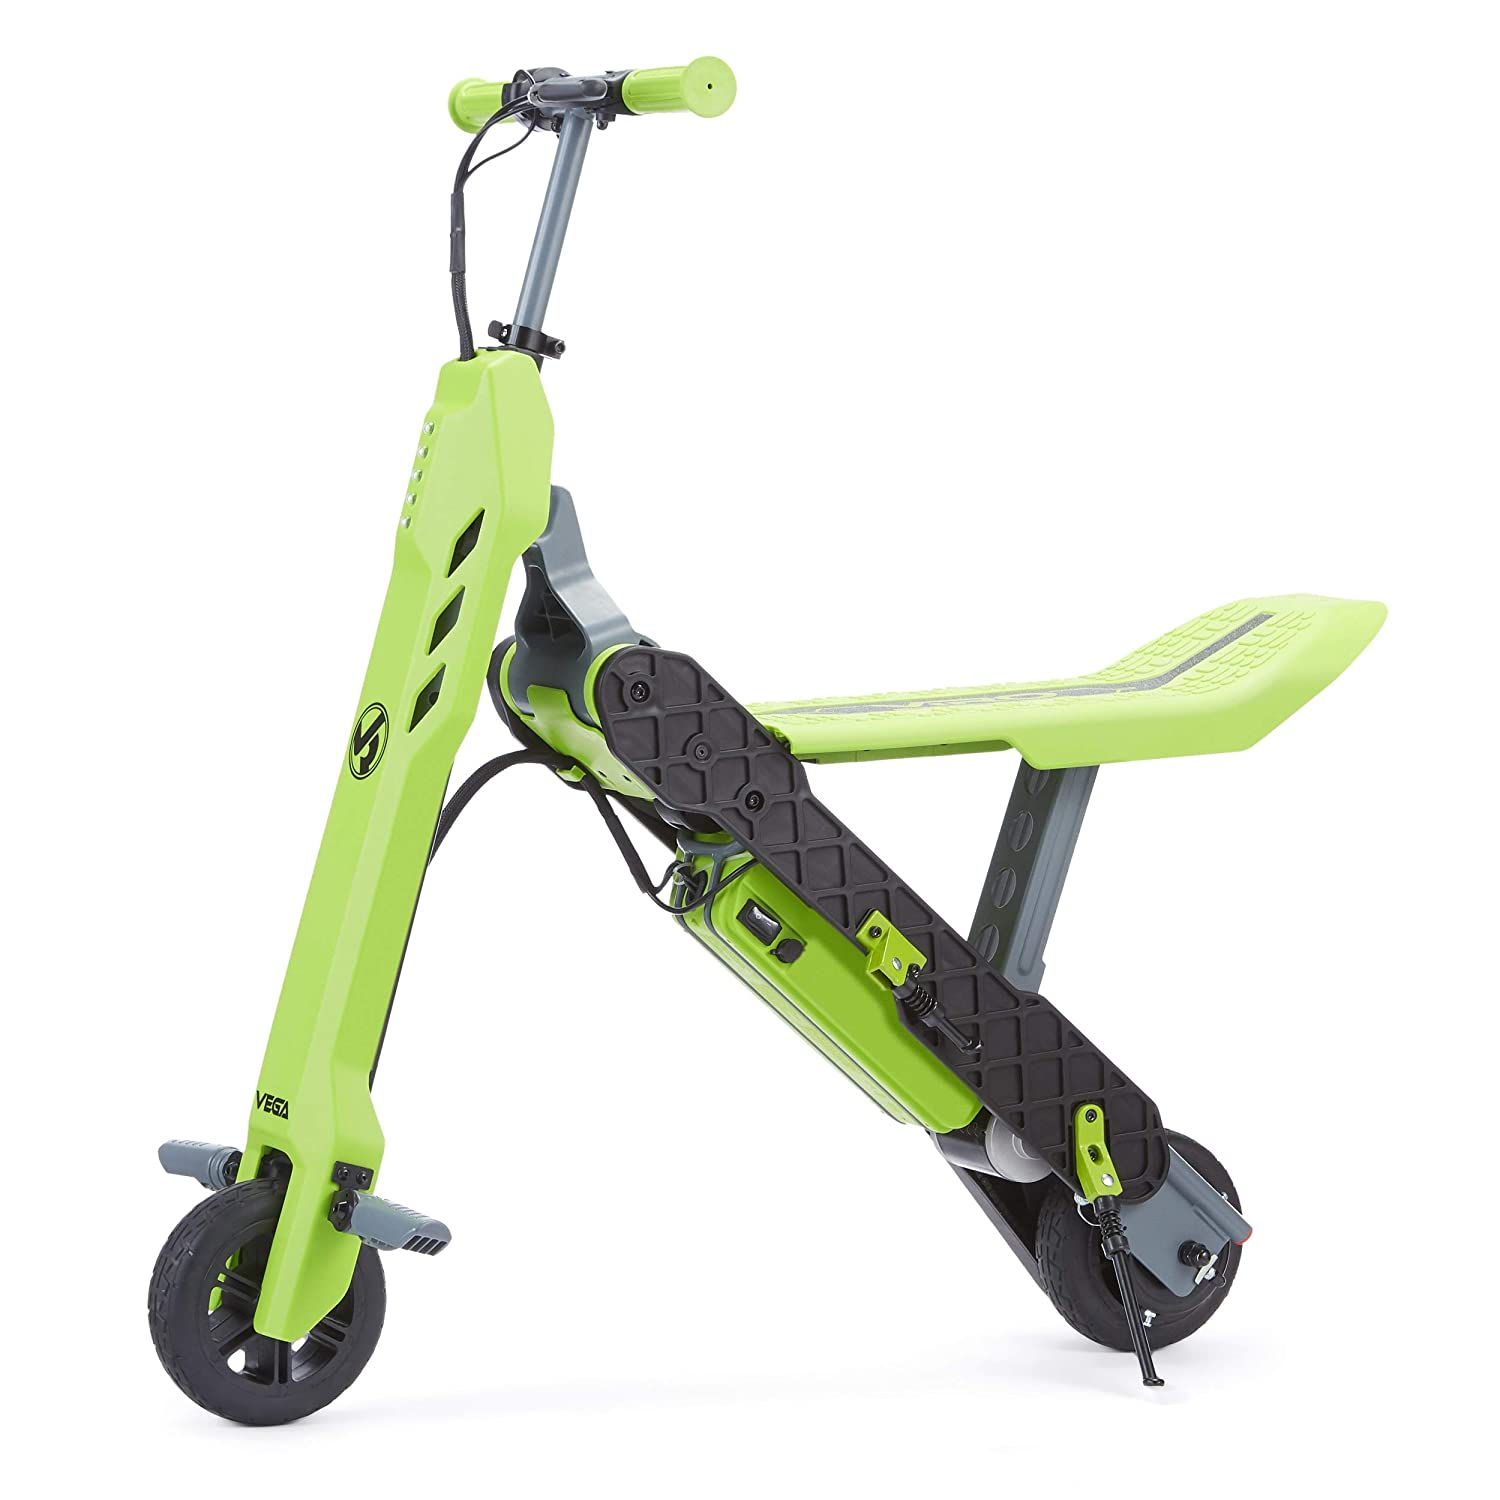 VIRO Rides Vega Transforming Electric Scooter: Best electric scooter for kids